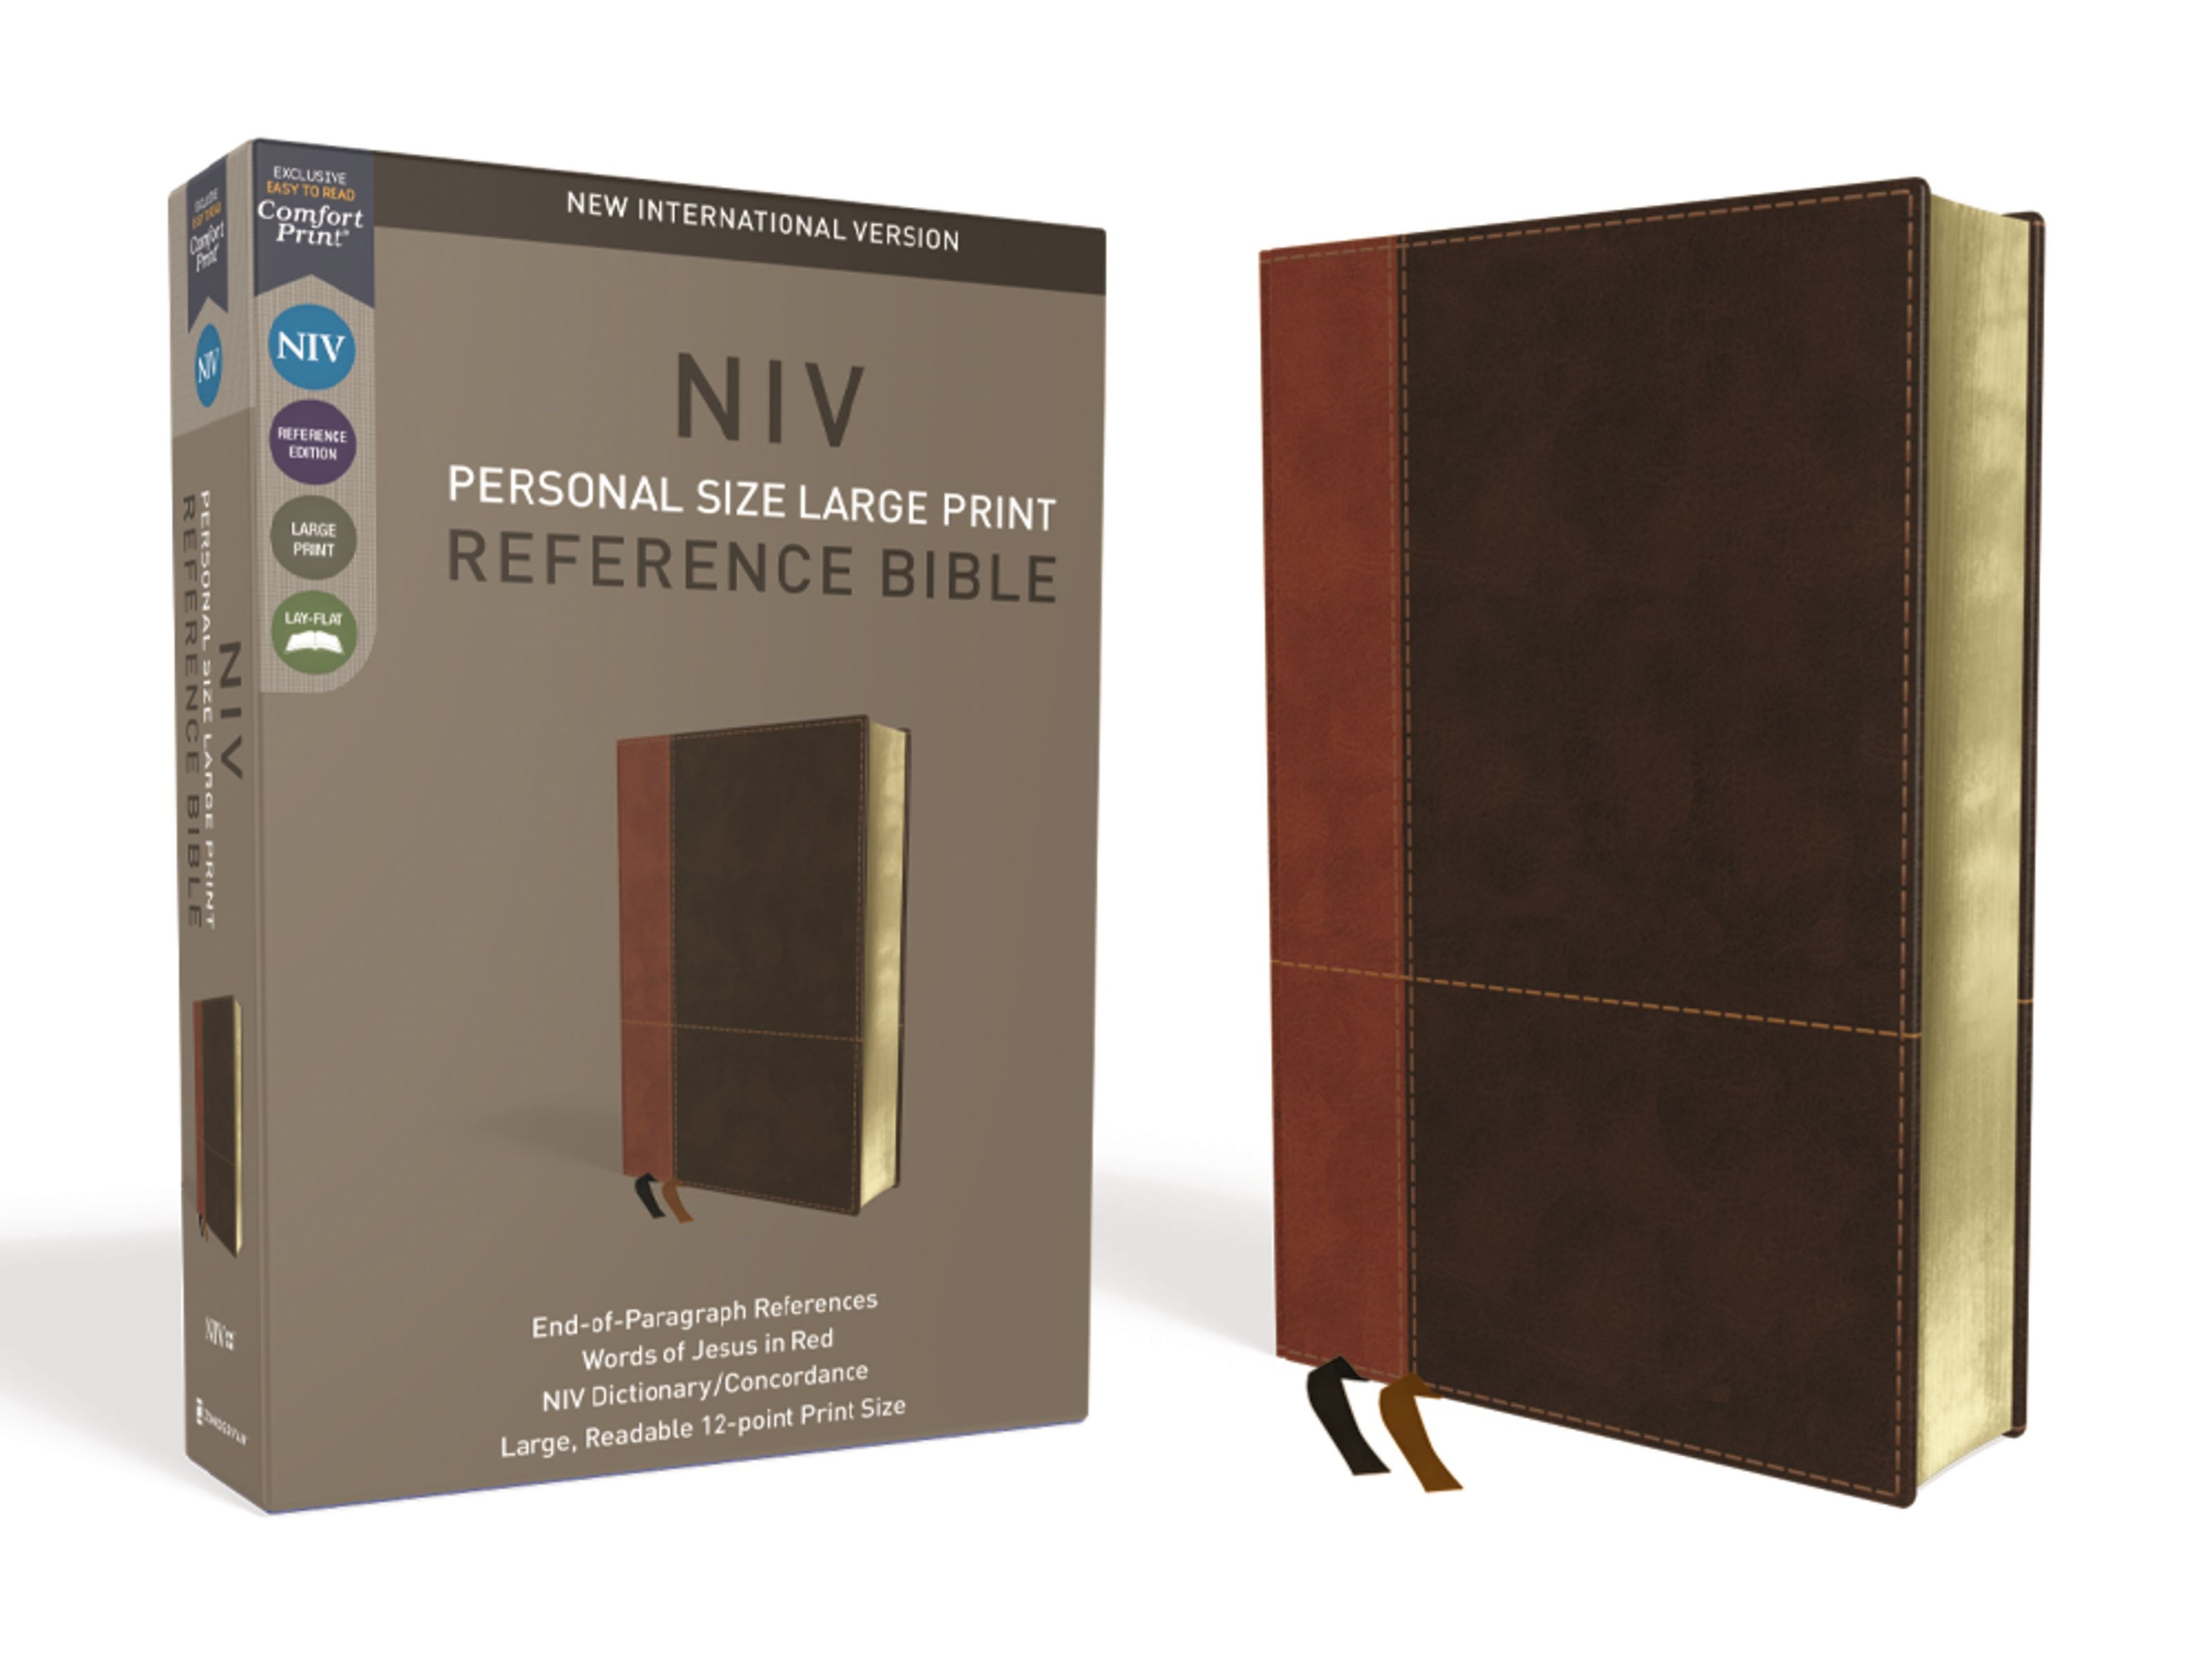 NIV Personal Size Large Print Reference Bible (Comfort Print)-Tan/Brown LeatherSoft